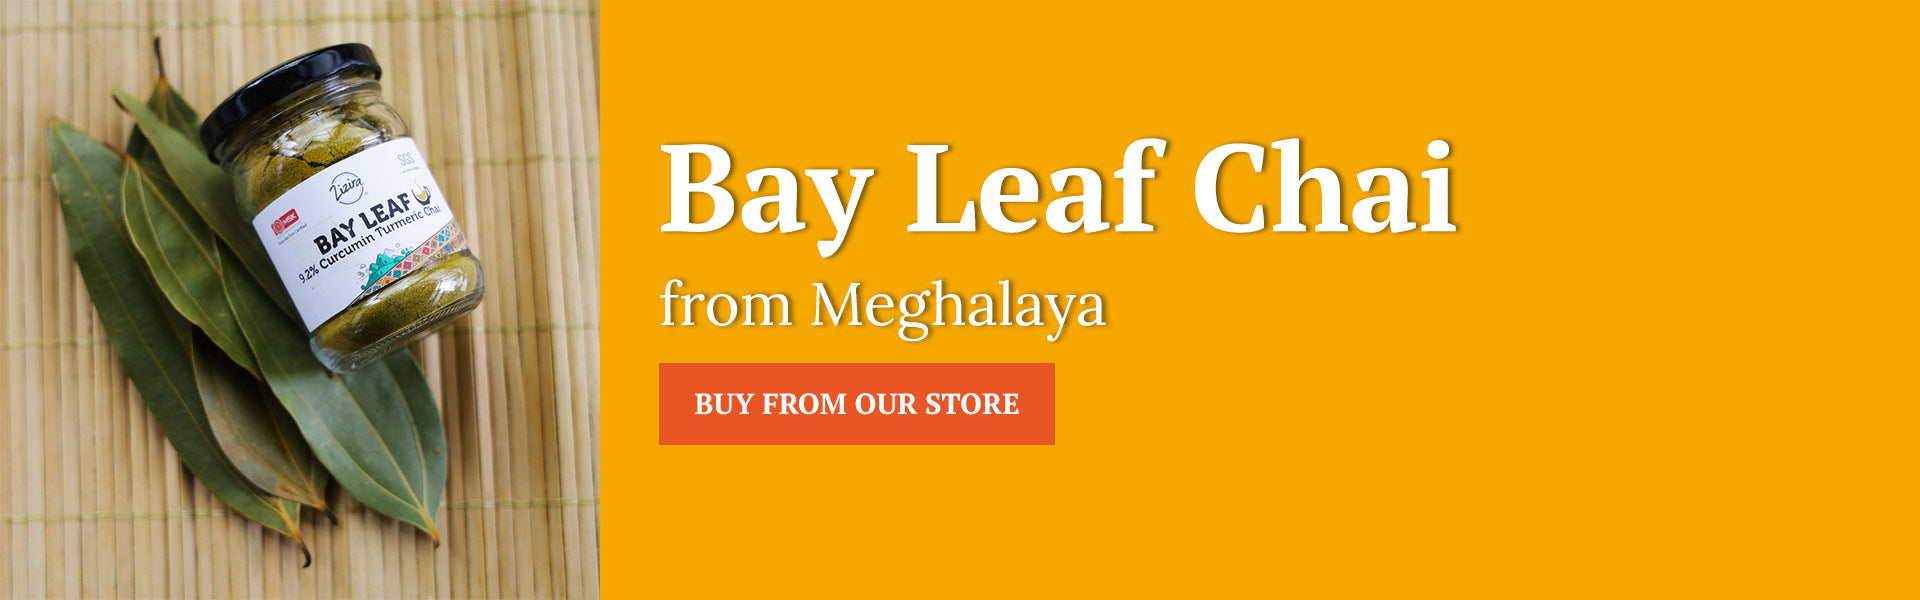 Bay Leaf Chai Website